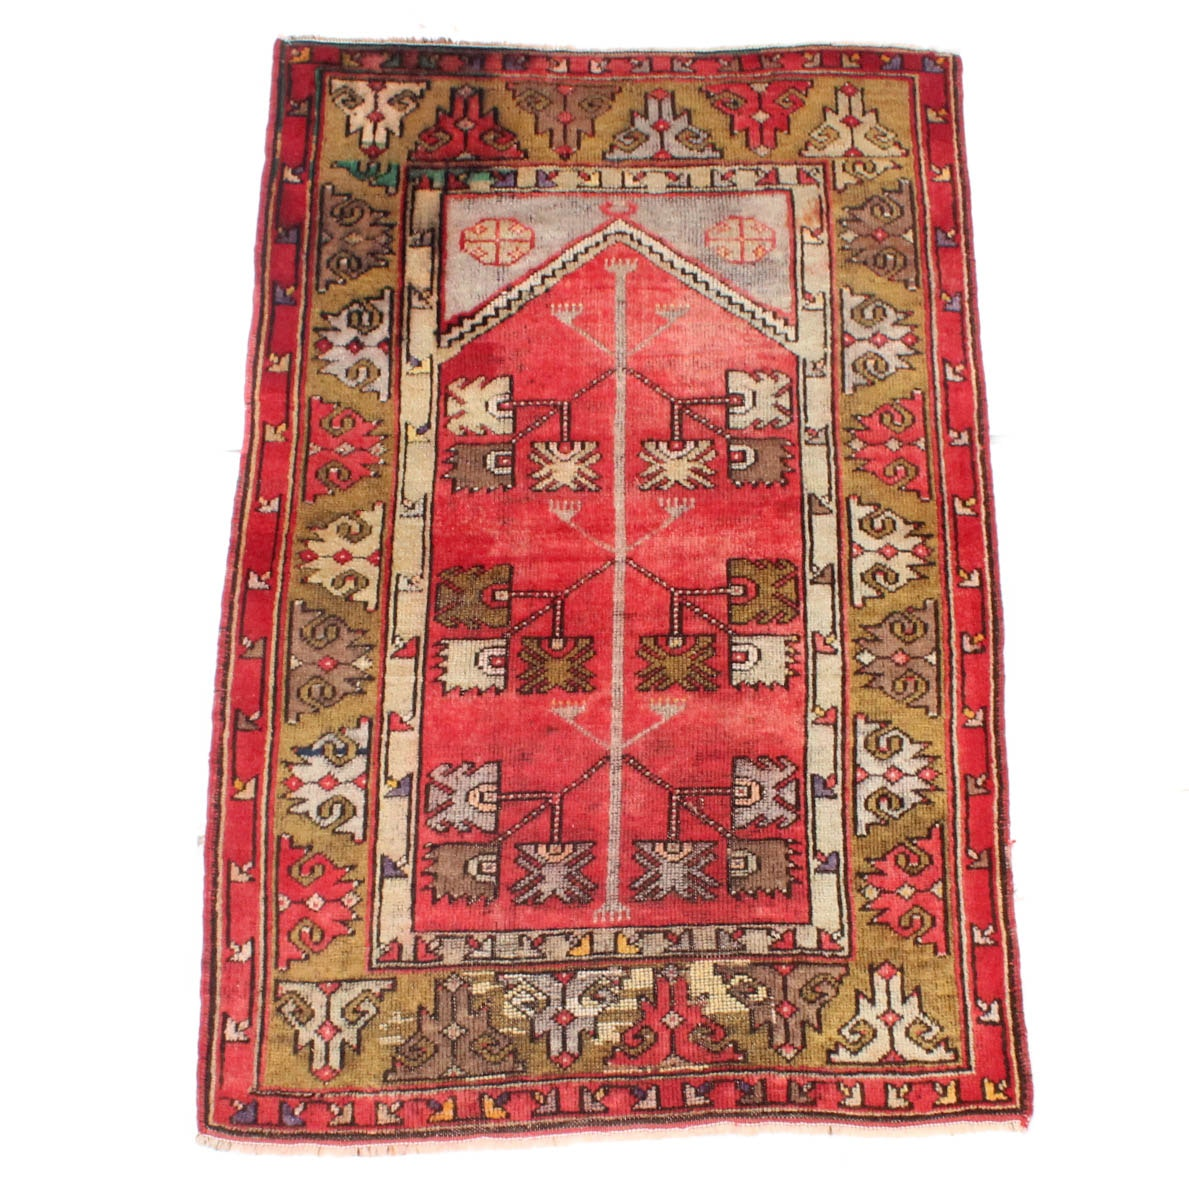 3' x 5' Antique Hand-Knotted Turkish Oushak Prayer Rug